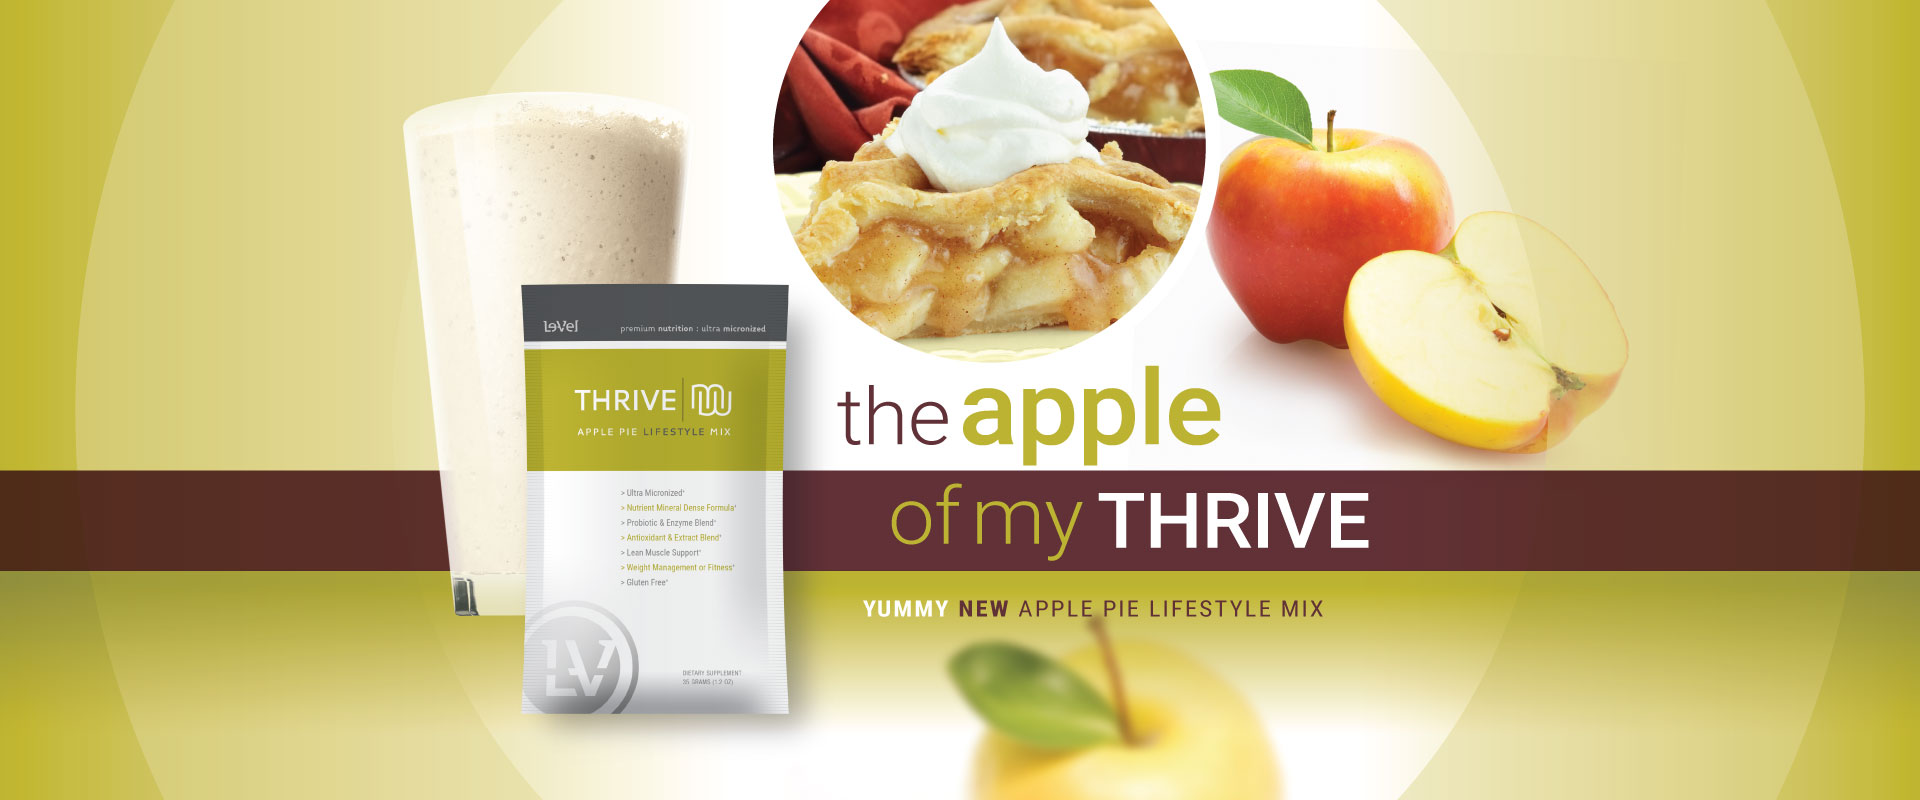 Yummy New Apple Pie Lifestyl Mix!